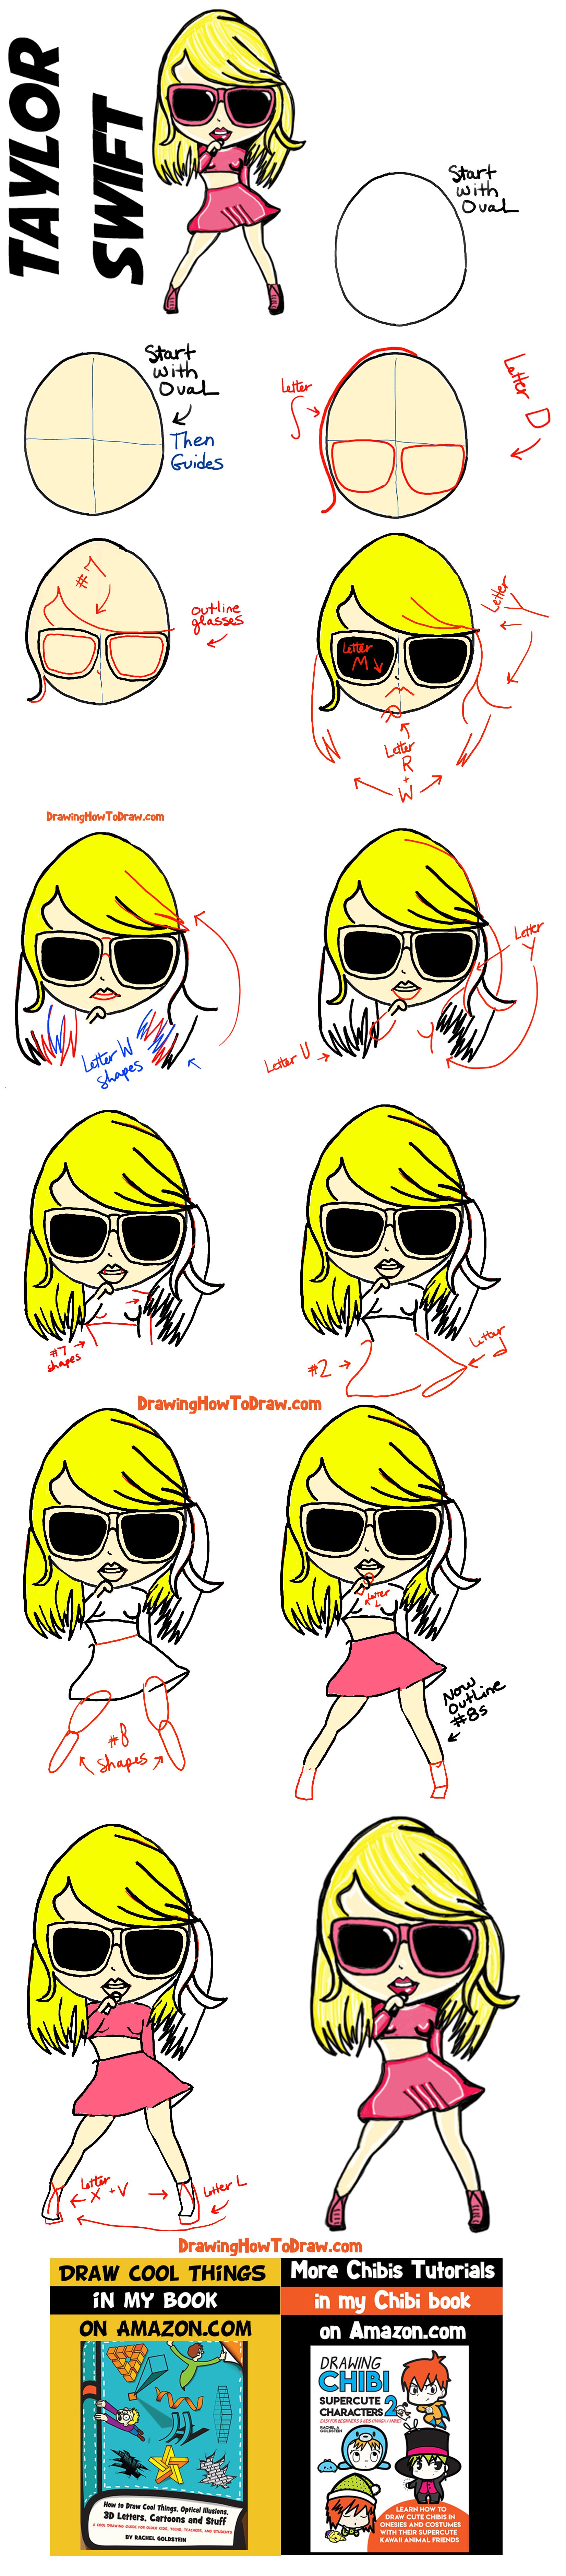 How to Draw Taylor Swift as Cute Cartoon Chibi Drawing